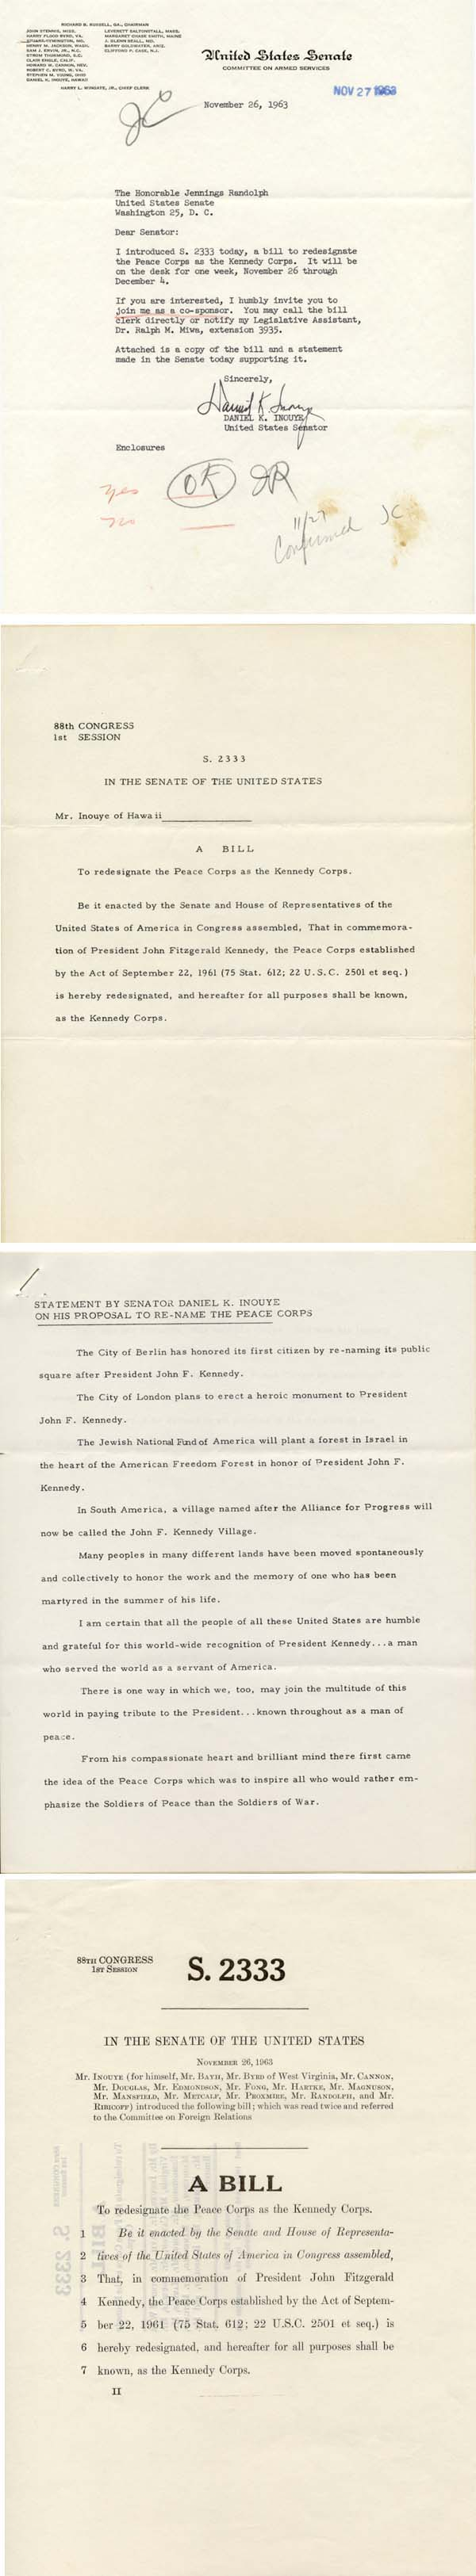 Four days after Kennedy is assassinated, Senator Inouye introduces a bill to rename the Peace Corps the Kennedy corps